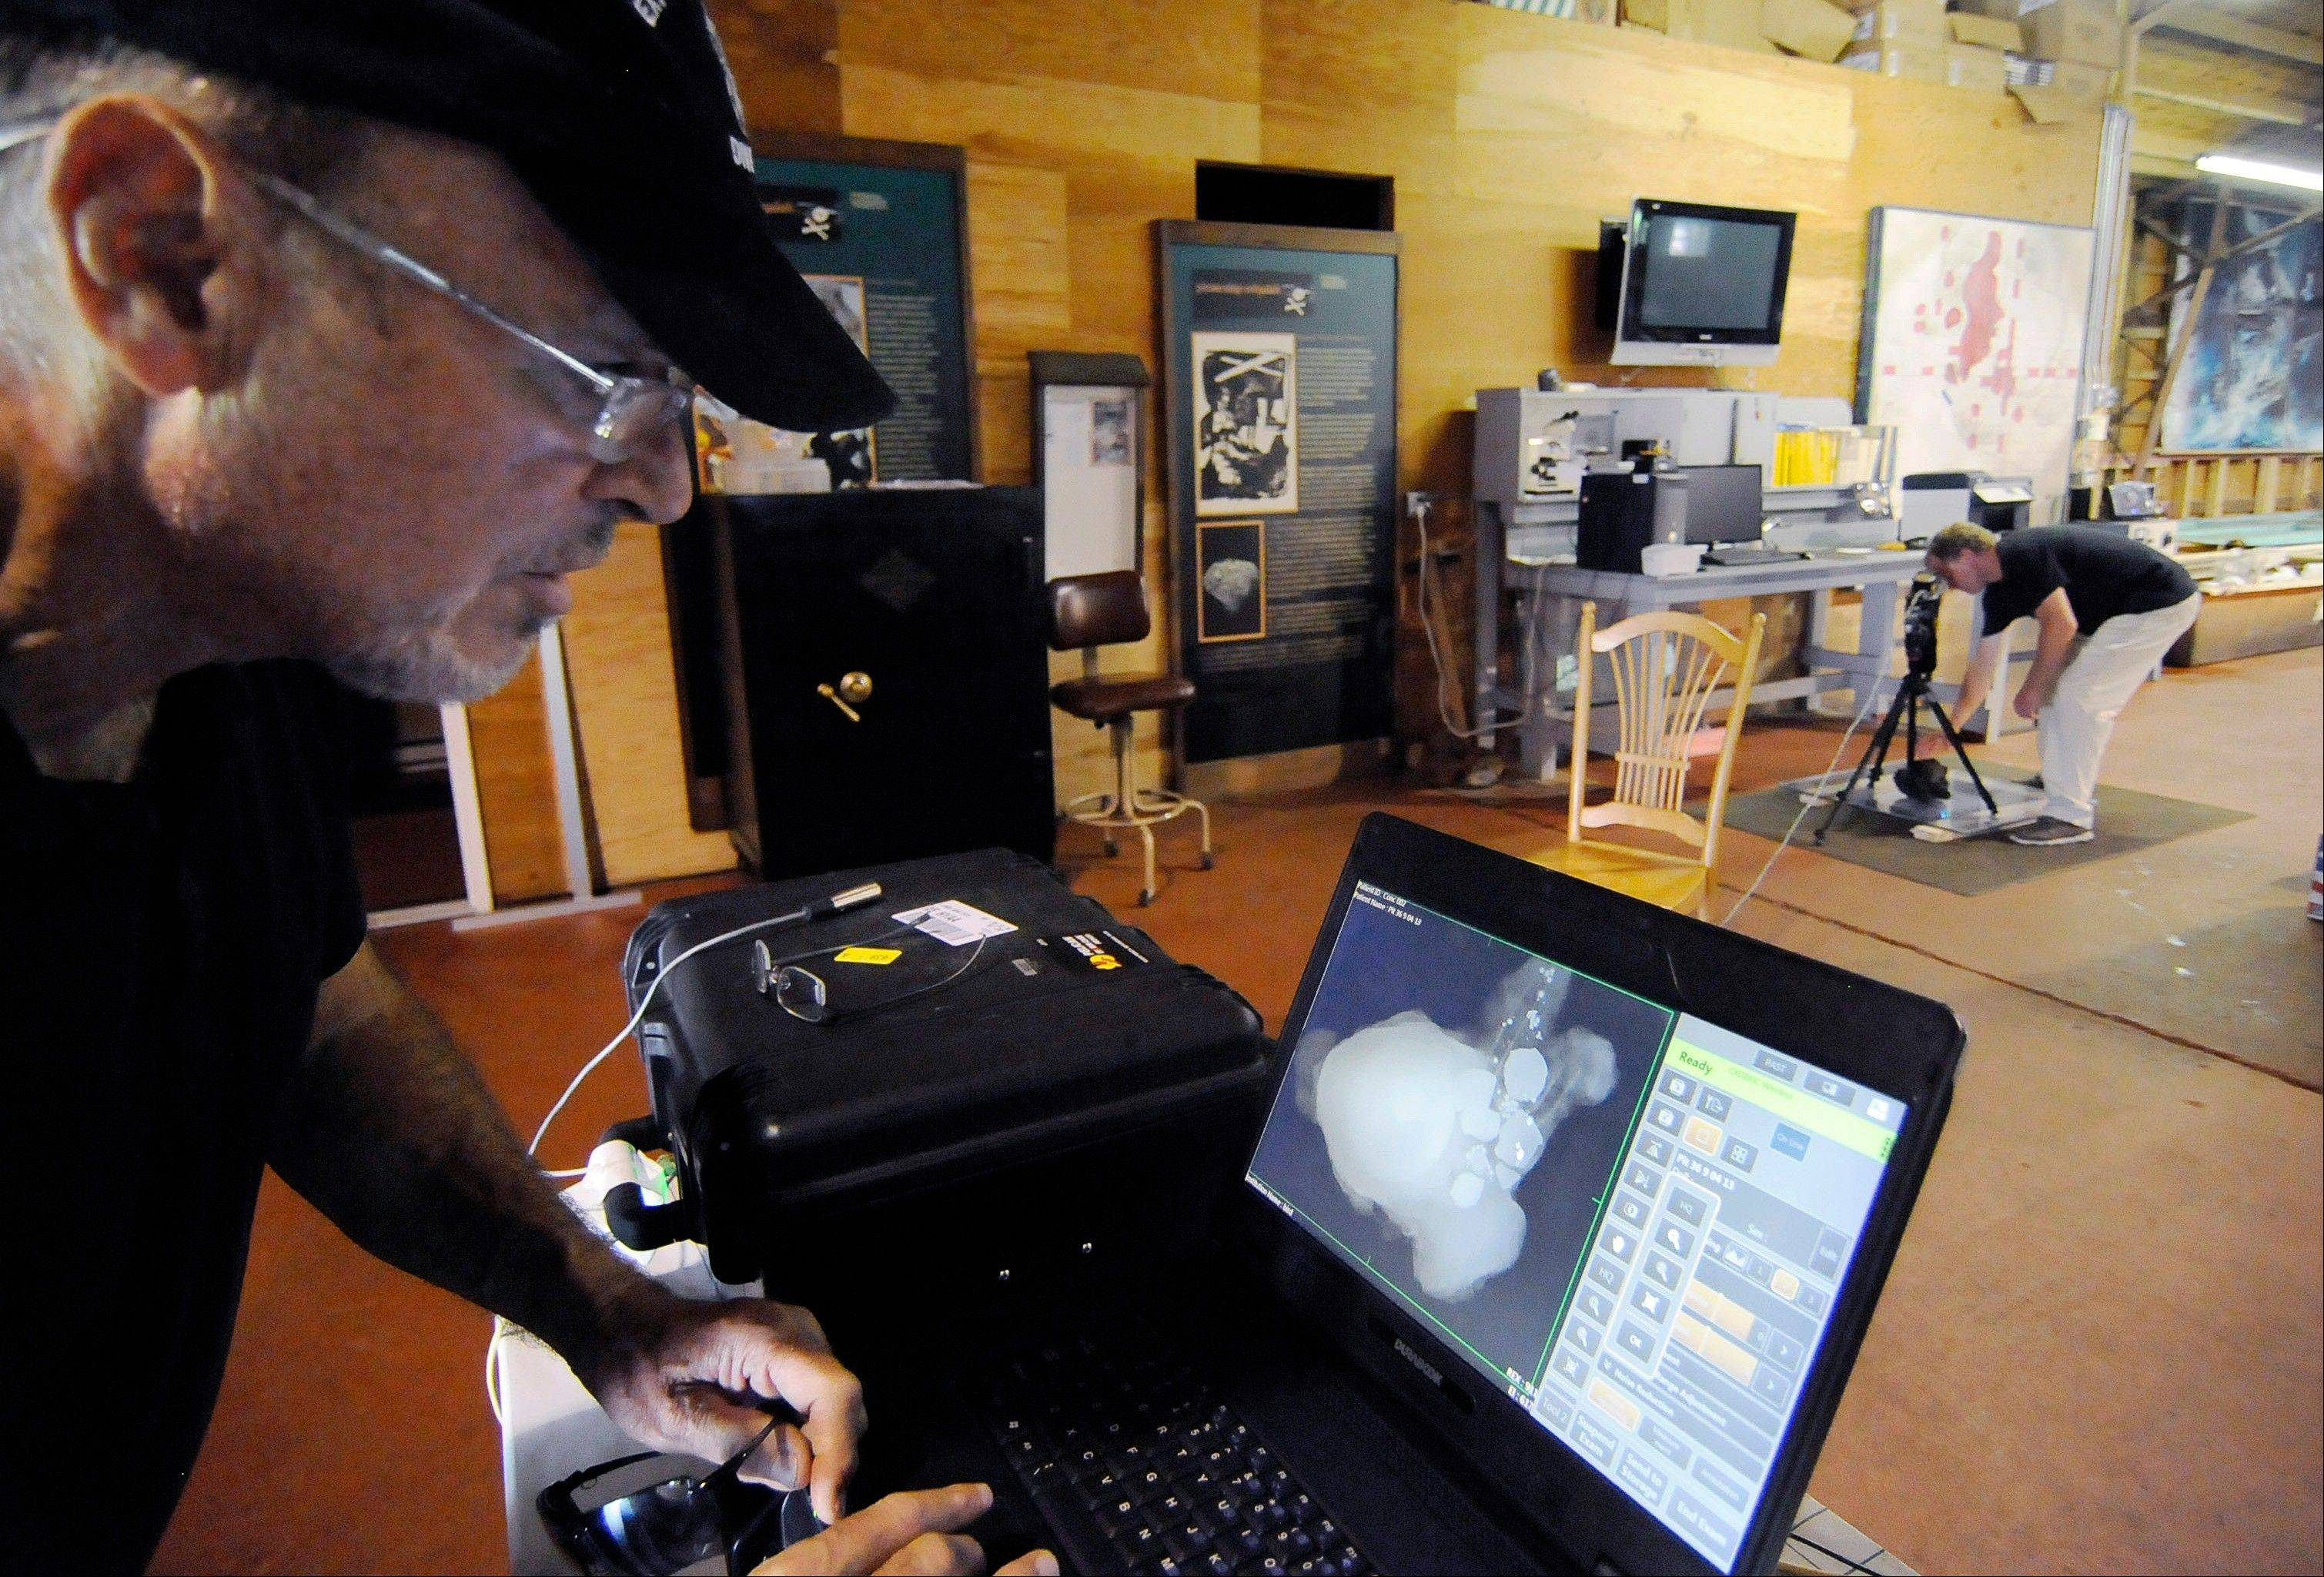 Barry Clifford, left, reviews an X-ray image of a concretion showing a cannon ball and coins that diver and conservator Chris Macort, right, had recorded in Brewster, Mass.